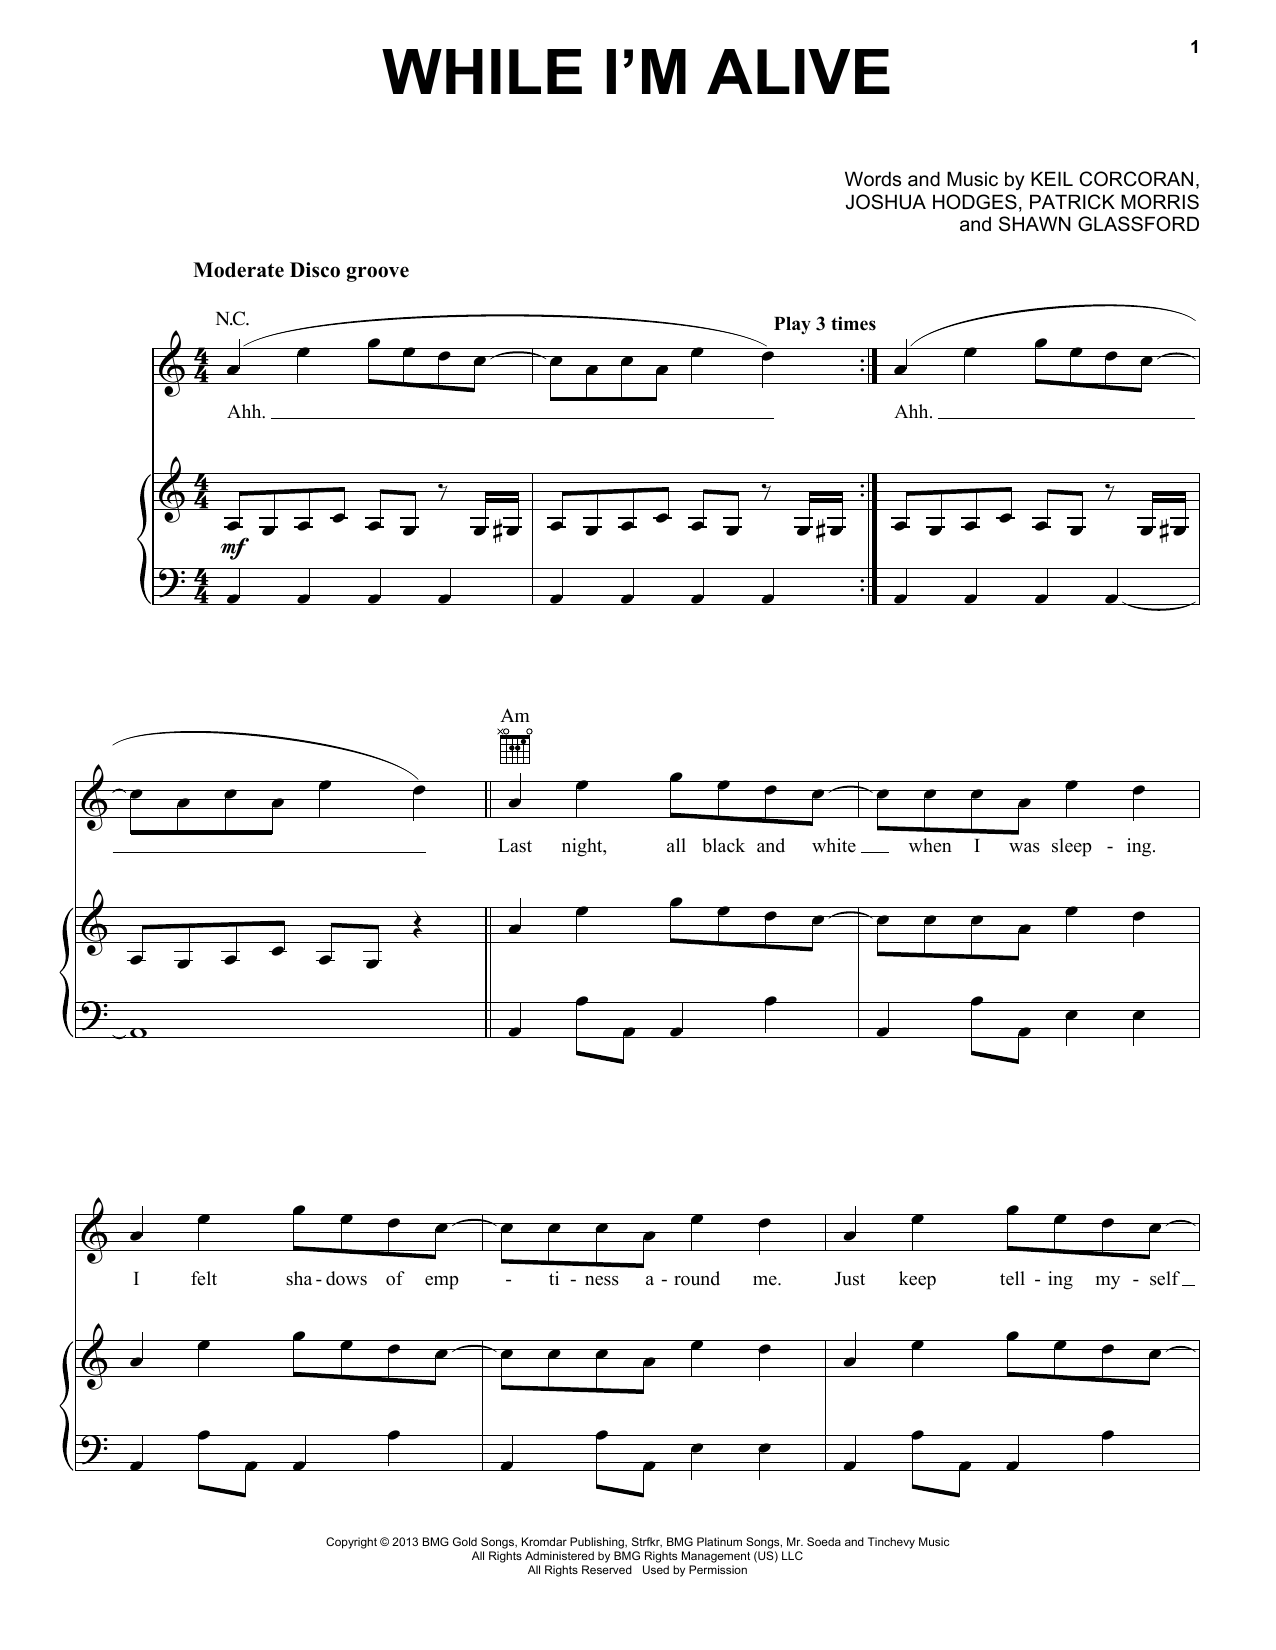 Strfkr While I'm Alive sheet music notes and chords. Download Printable PDF.